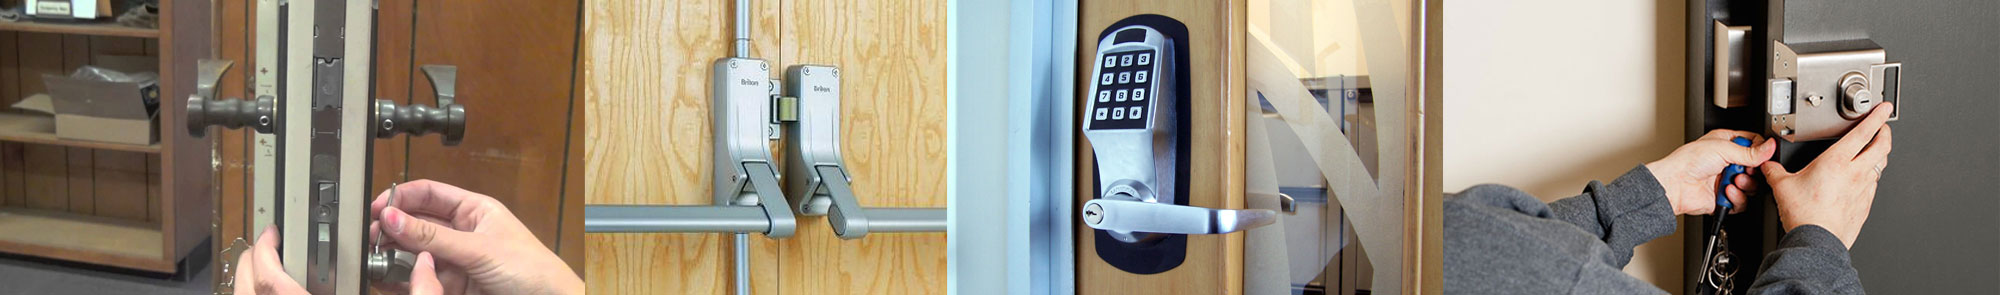 Perth NOR 24-hour emergency locksmith lockaround